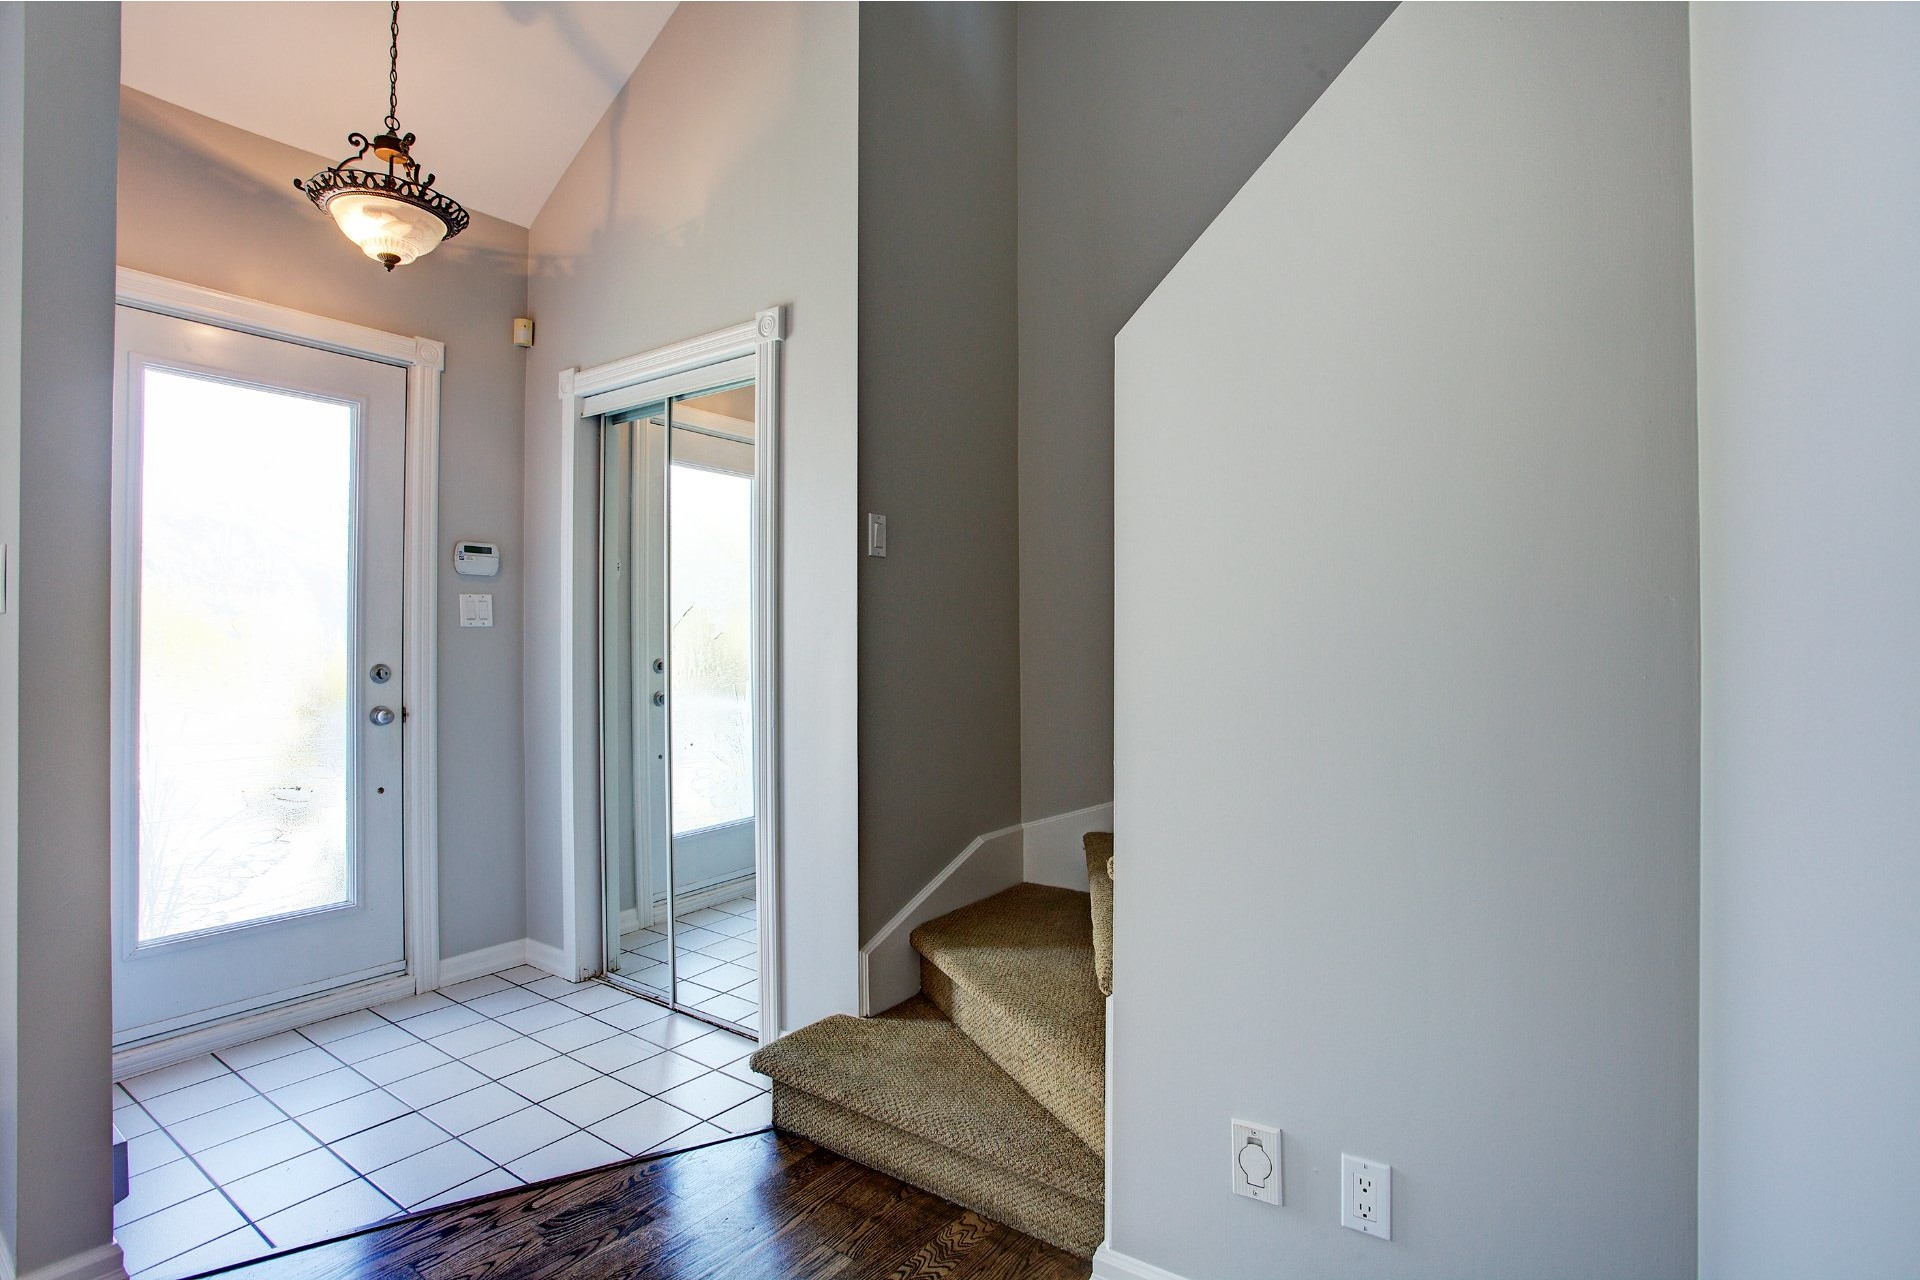 image 5 - House For sale Vaudreuil-Dorion - 10 rooms